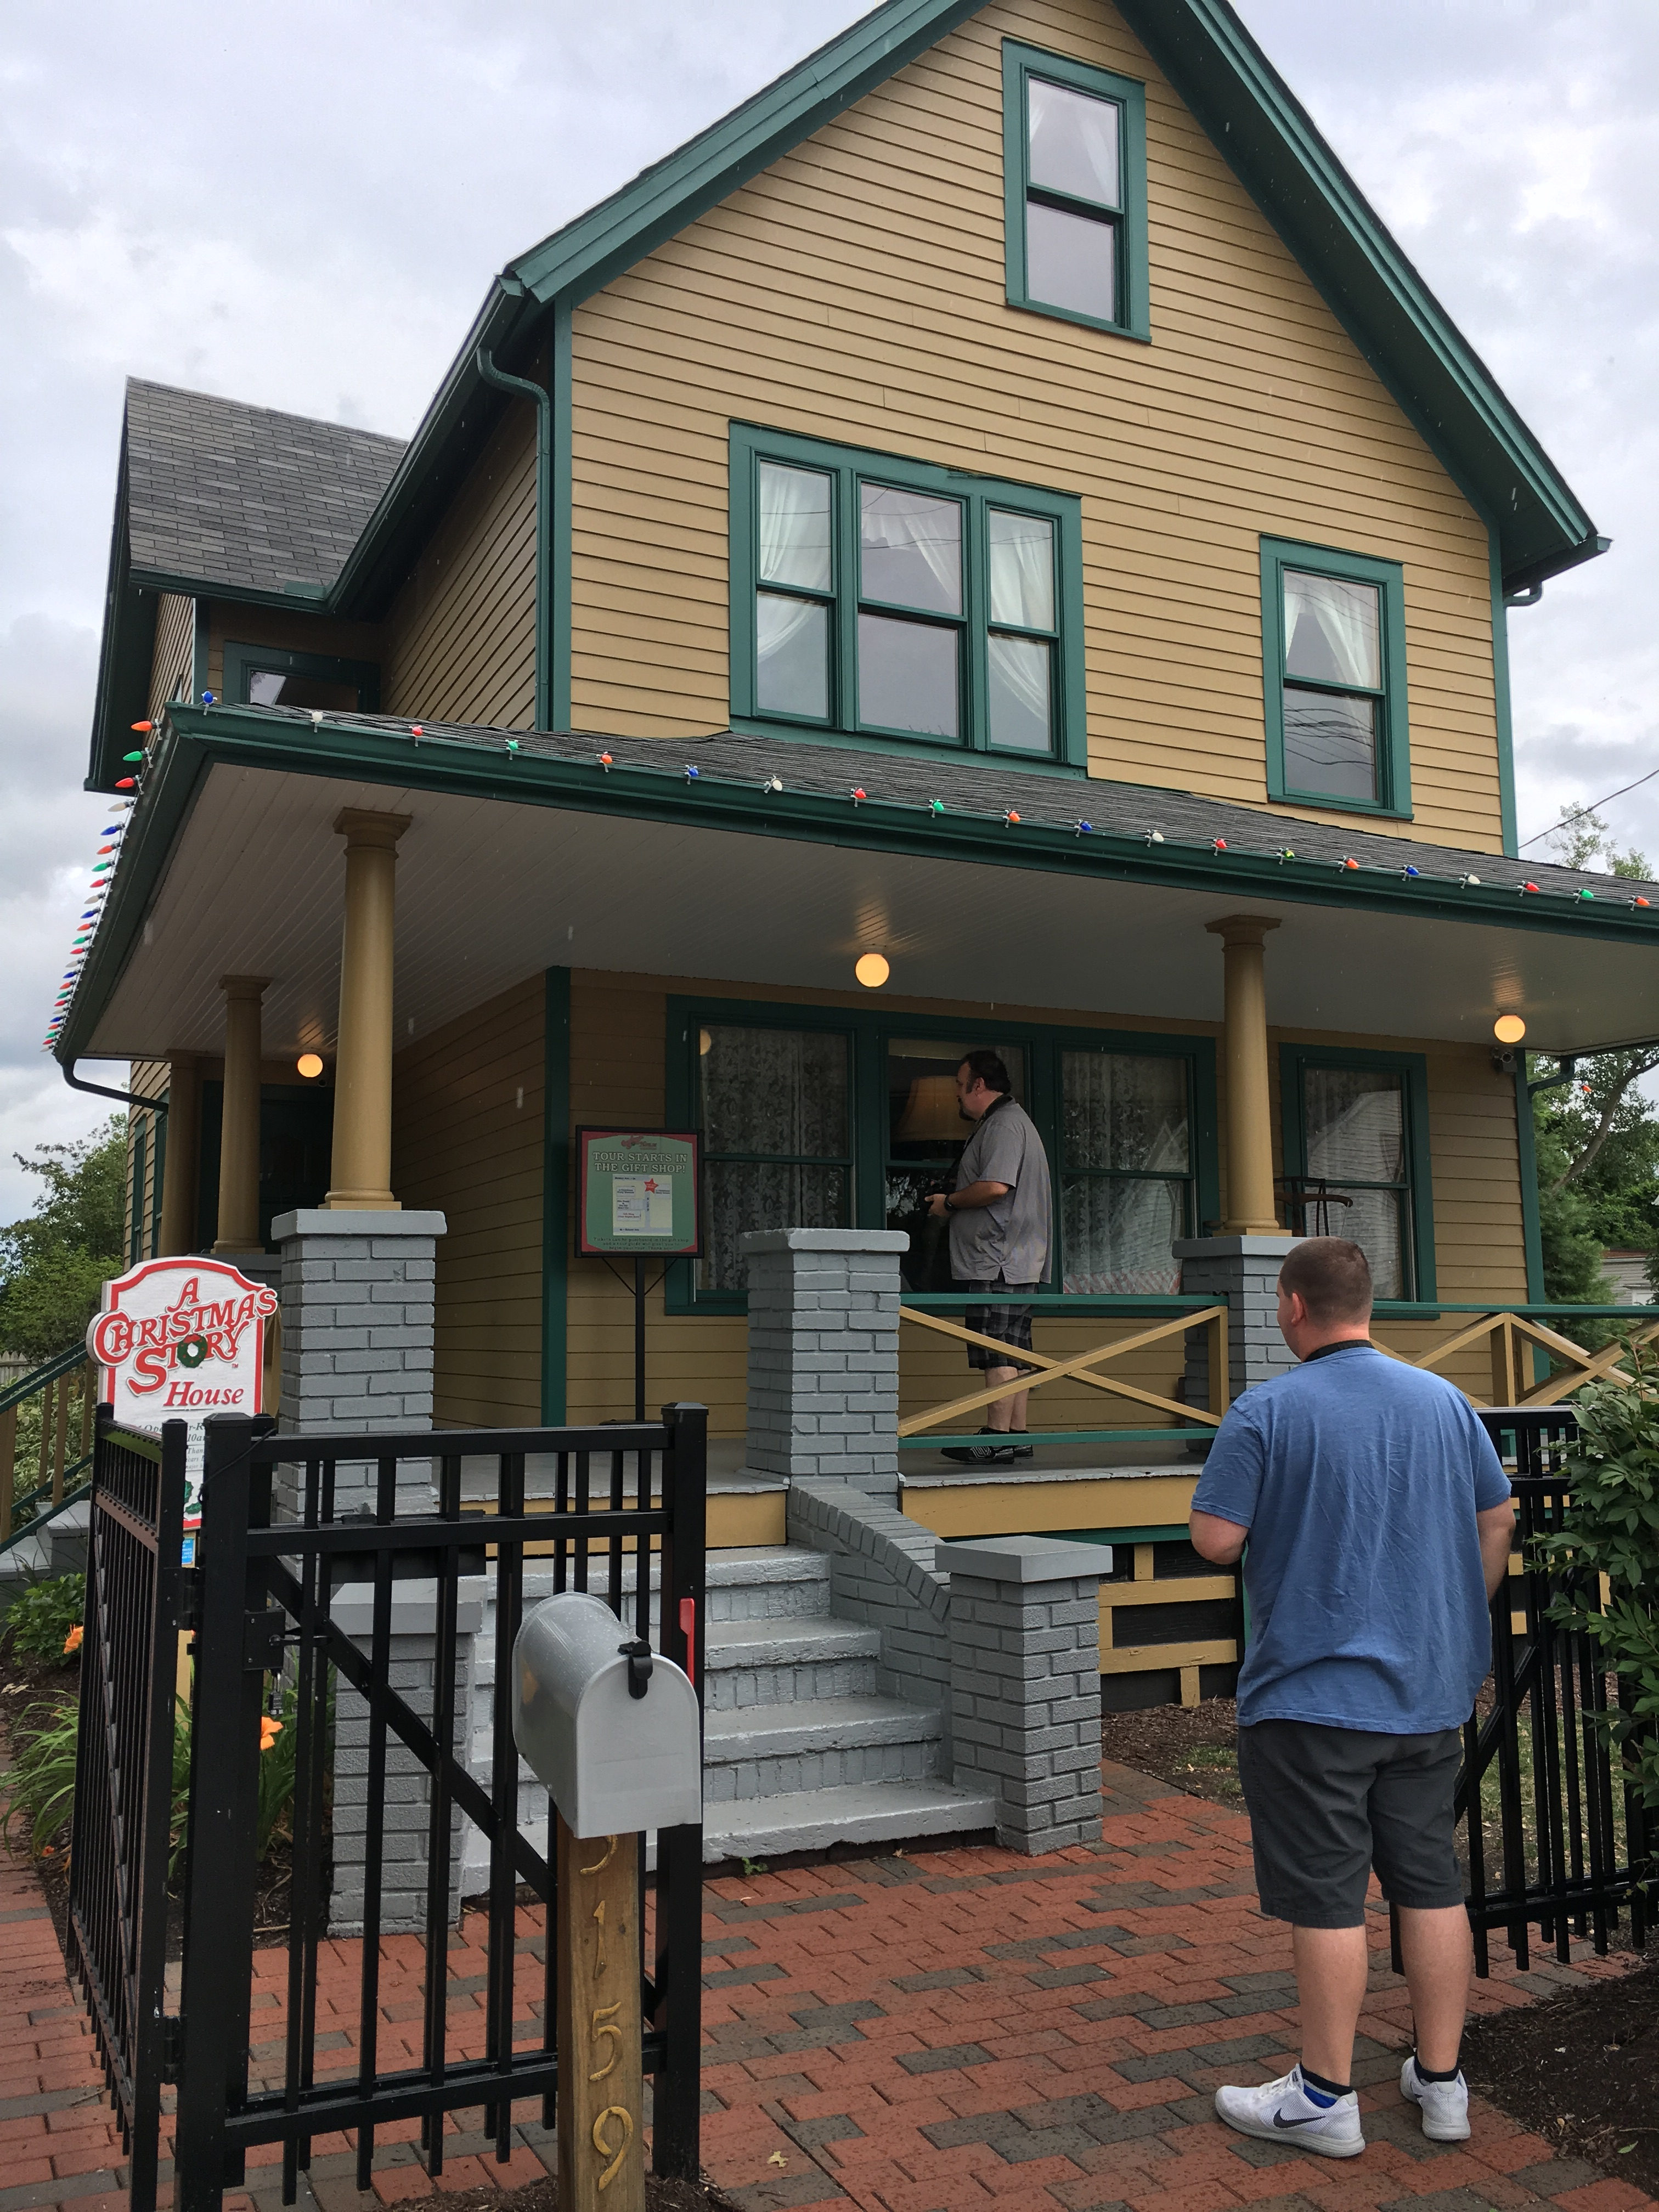 travel a christmas story house in cleveland lets you step into the movie washington times